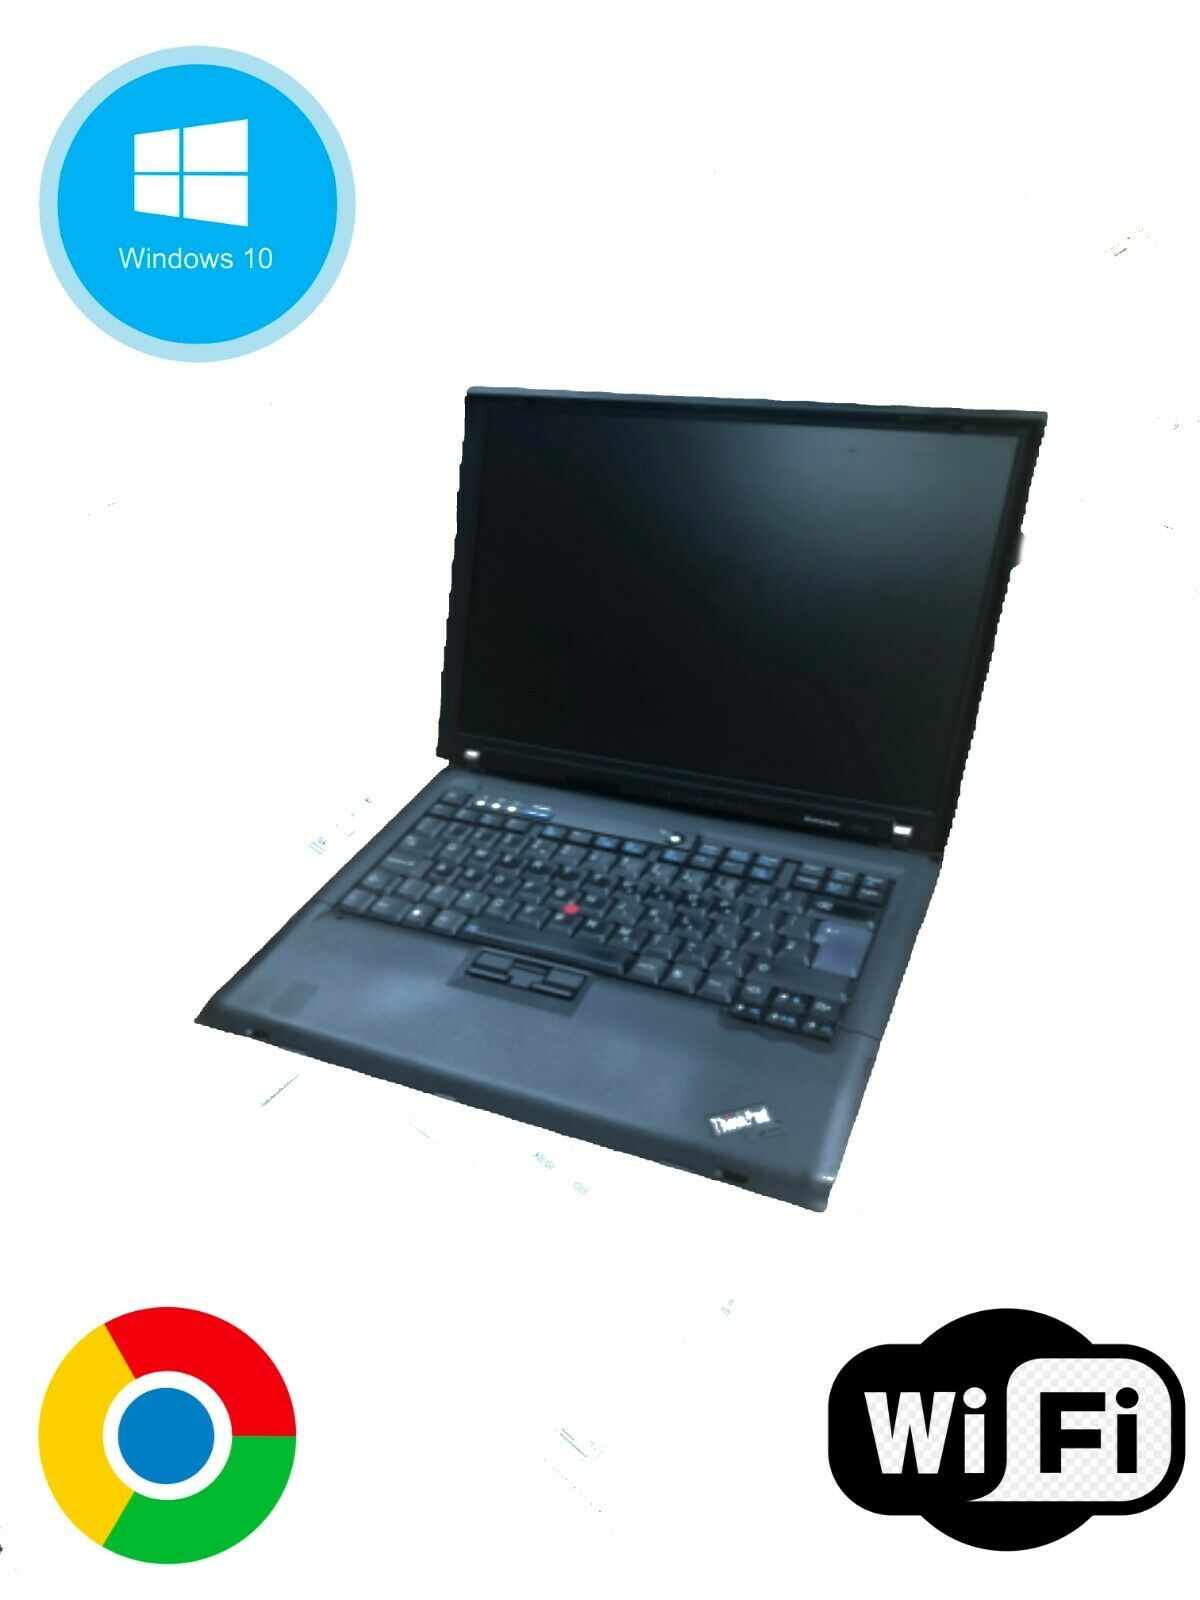 Laptop Windows - Lenovo ThinkPad R60e Laptop, 160GB HDD, 1GB RAM, Intel, Windows 10 Pro